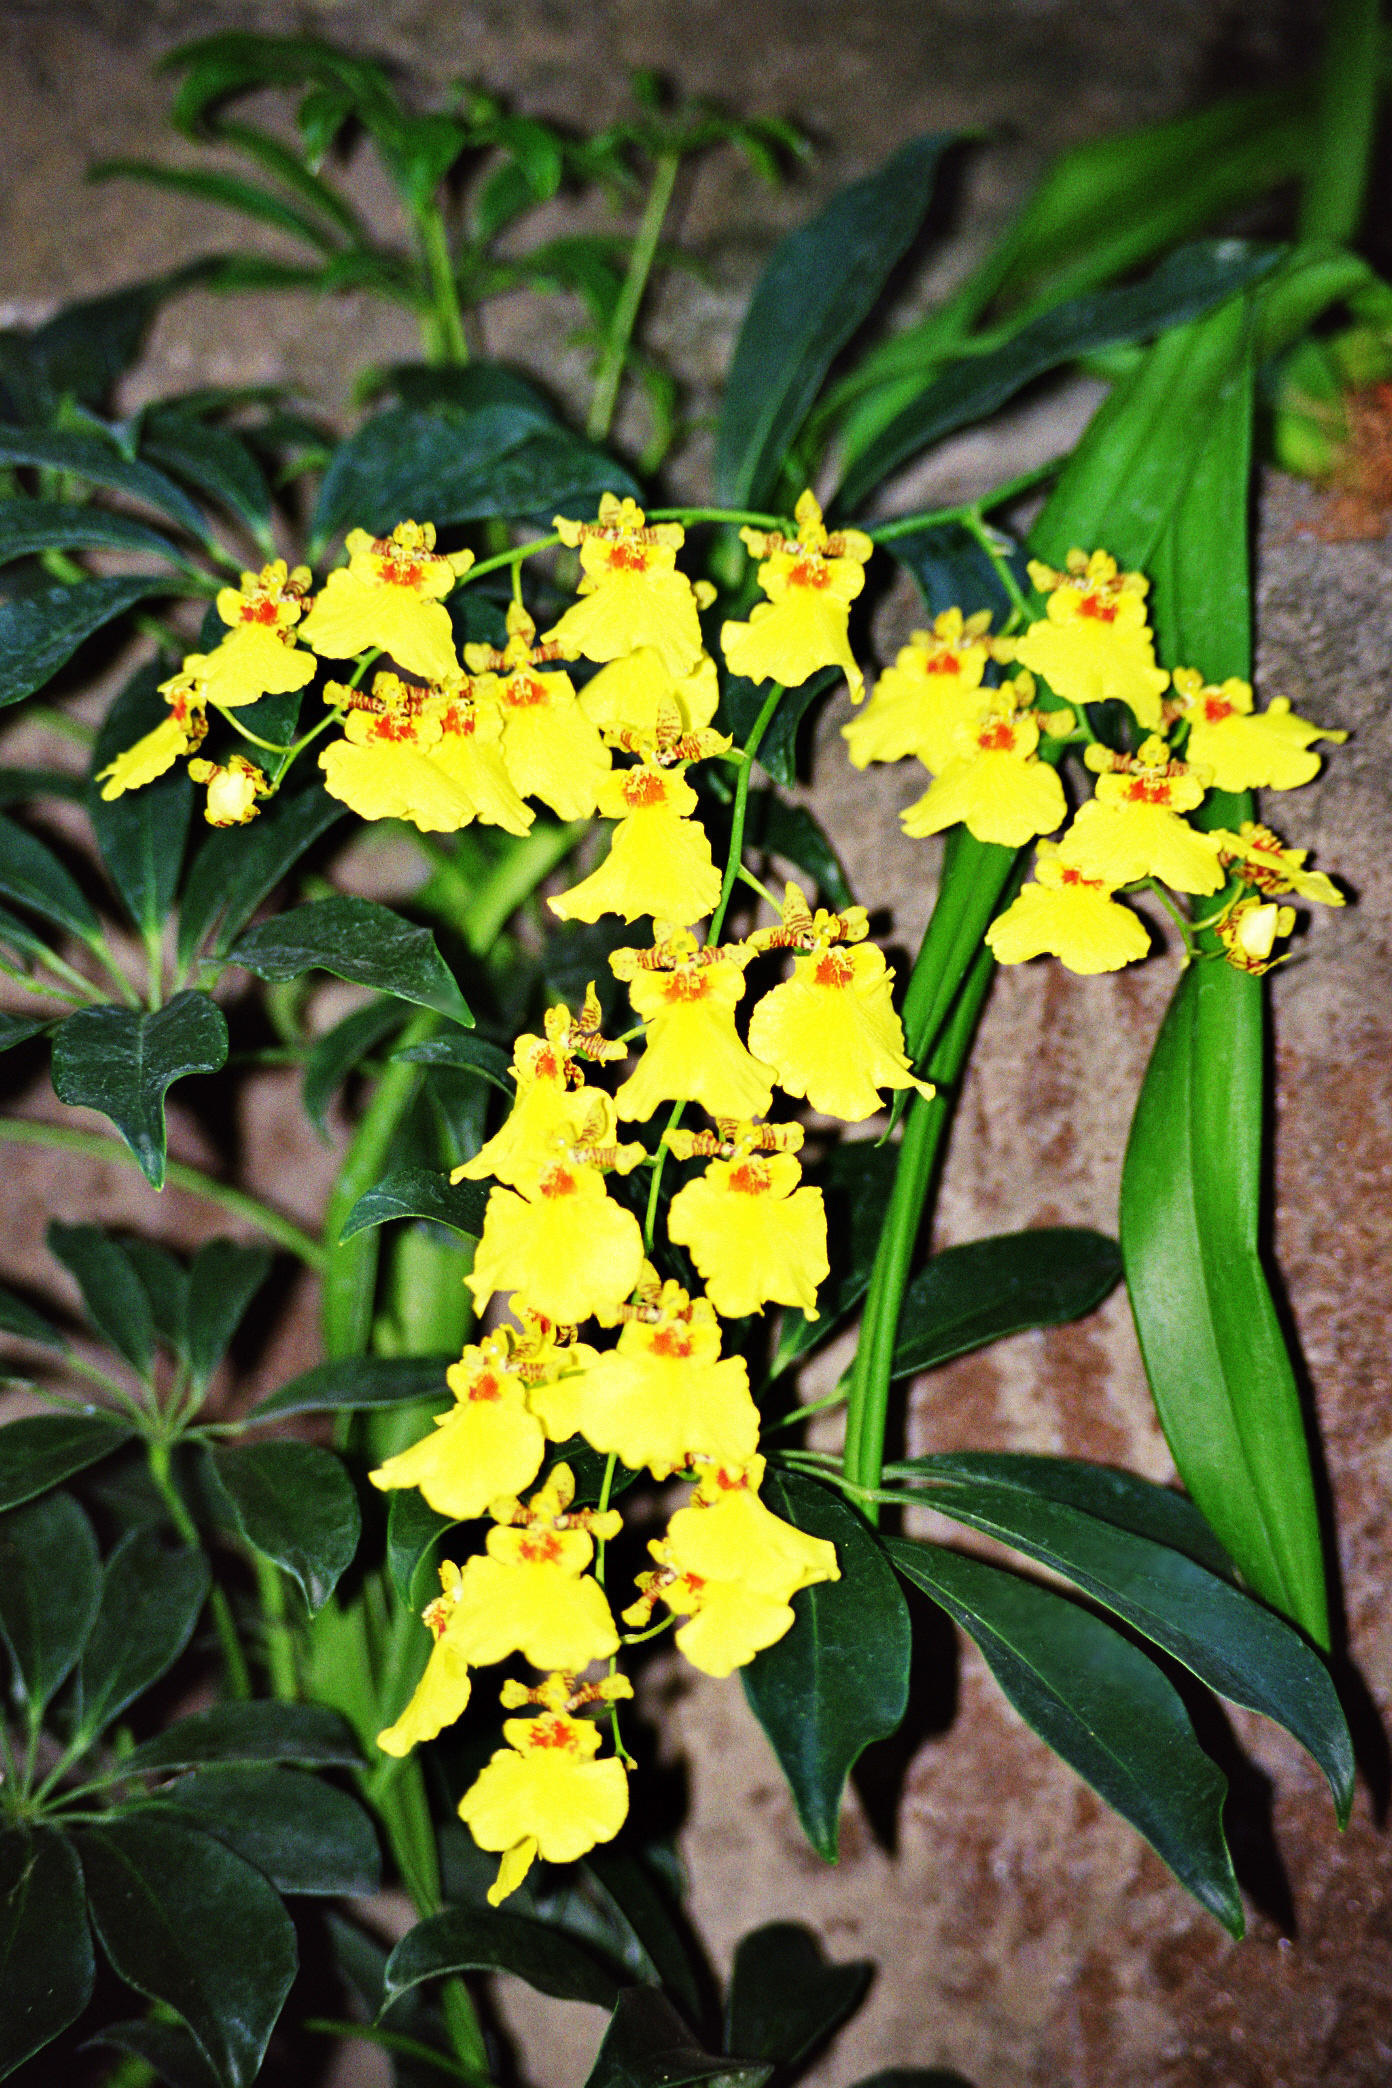 Oncidium Gower Ramsey, Orchid,  Bushgarden, Tampa Bay, Florida